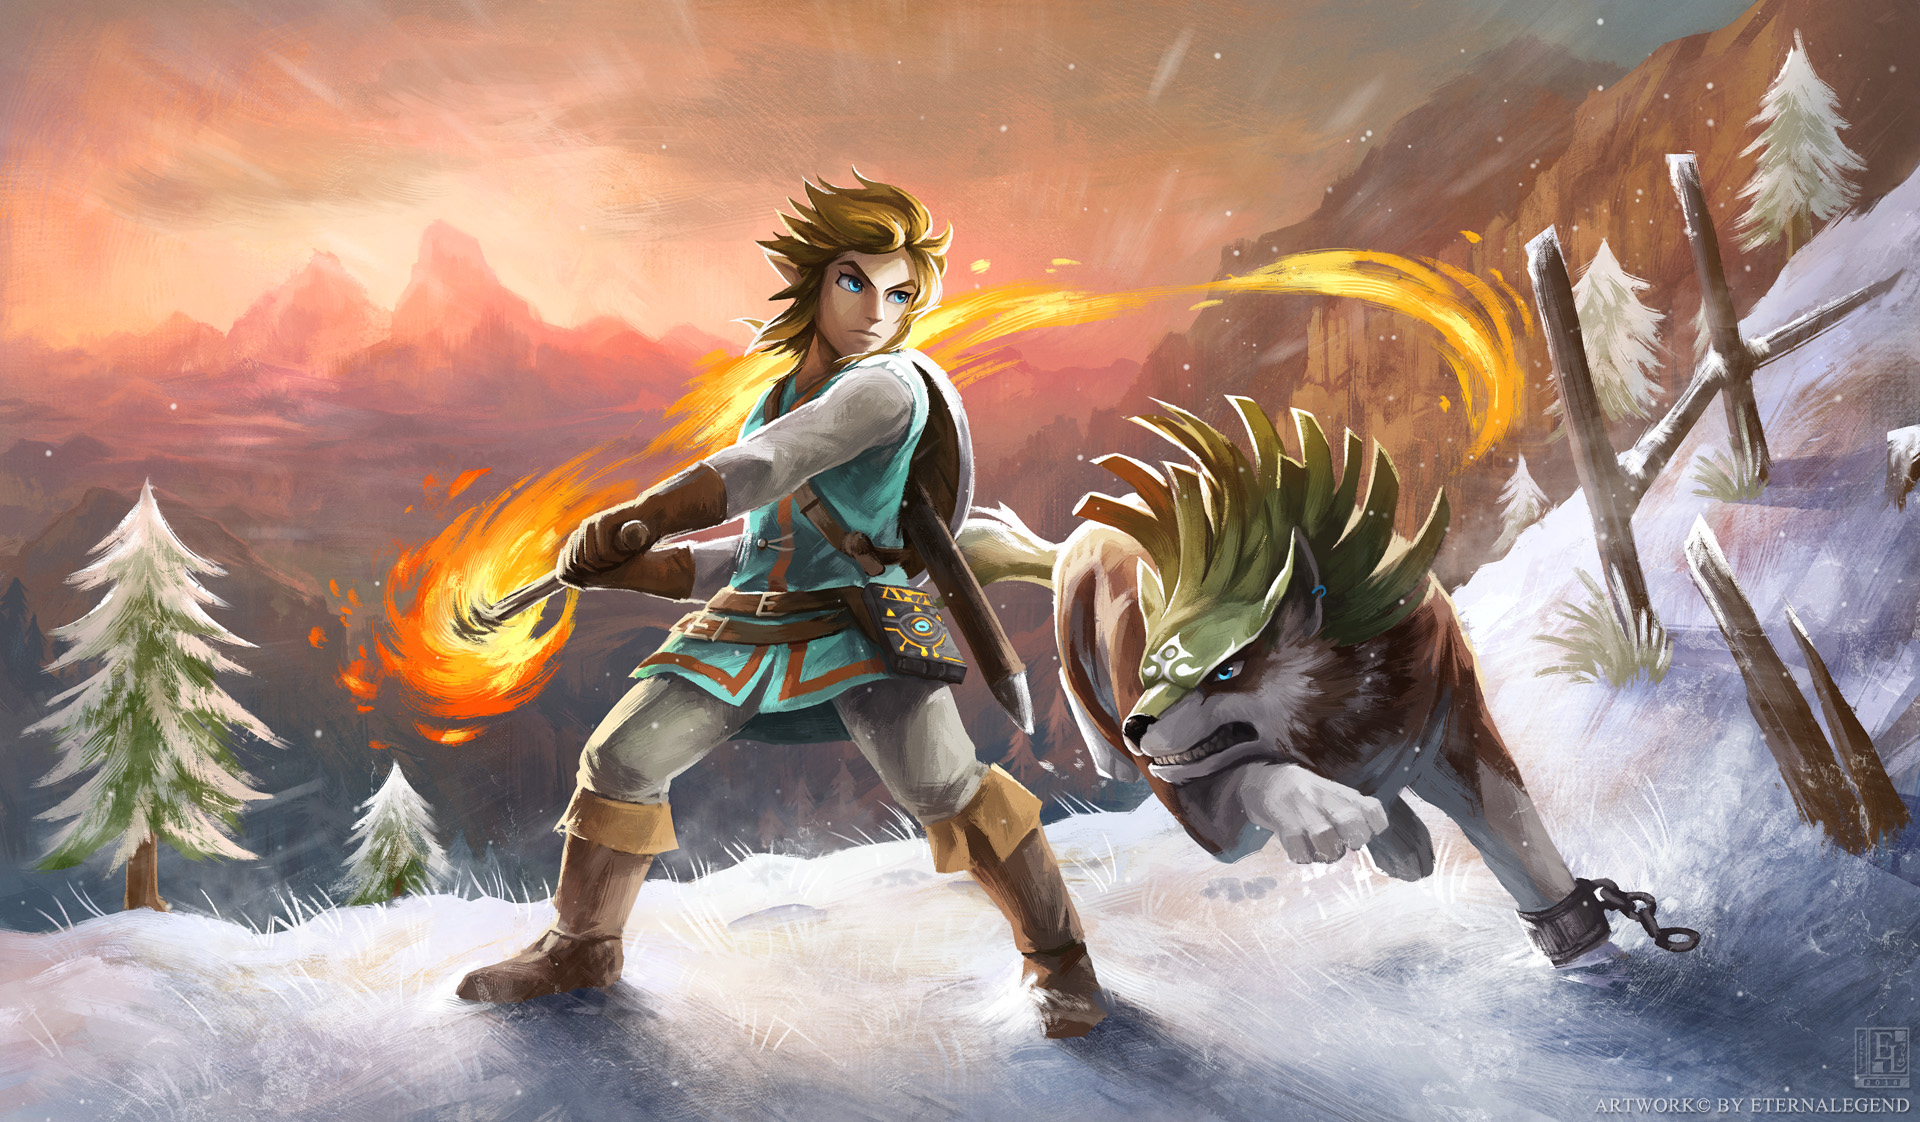 Free Download The Legend Of Zelda Breath Of The Wild Hd Wallpapers